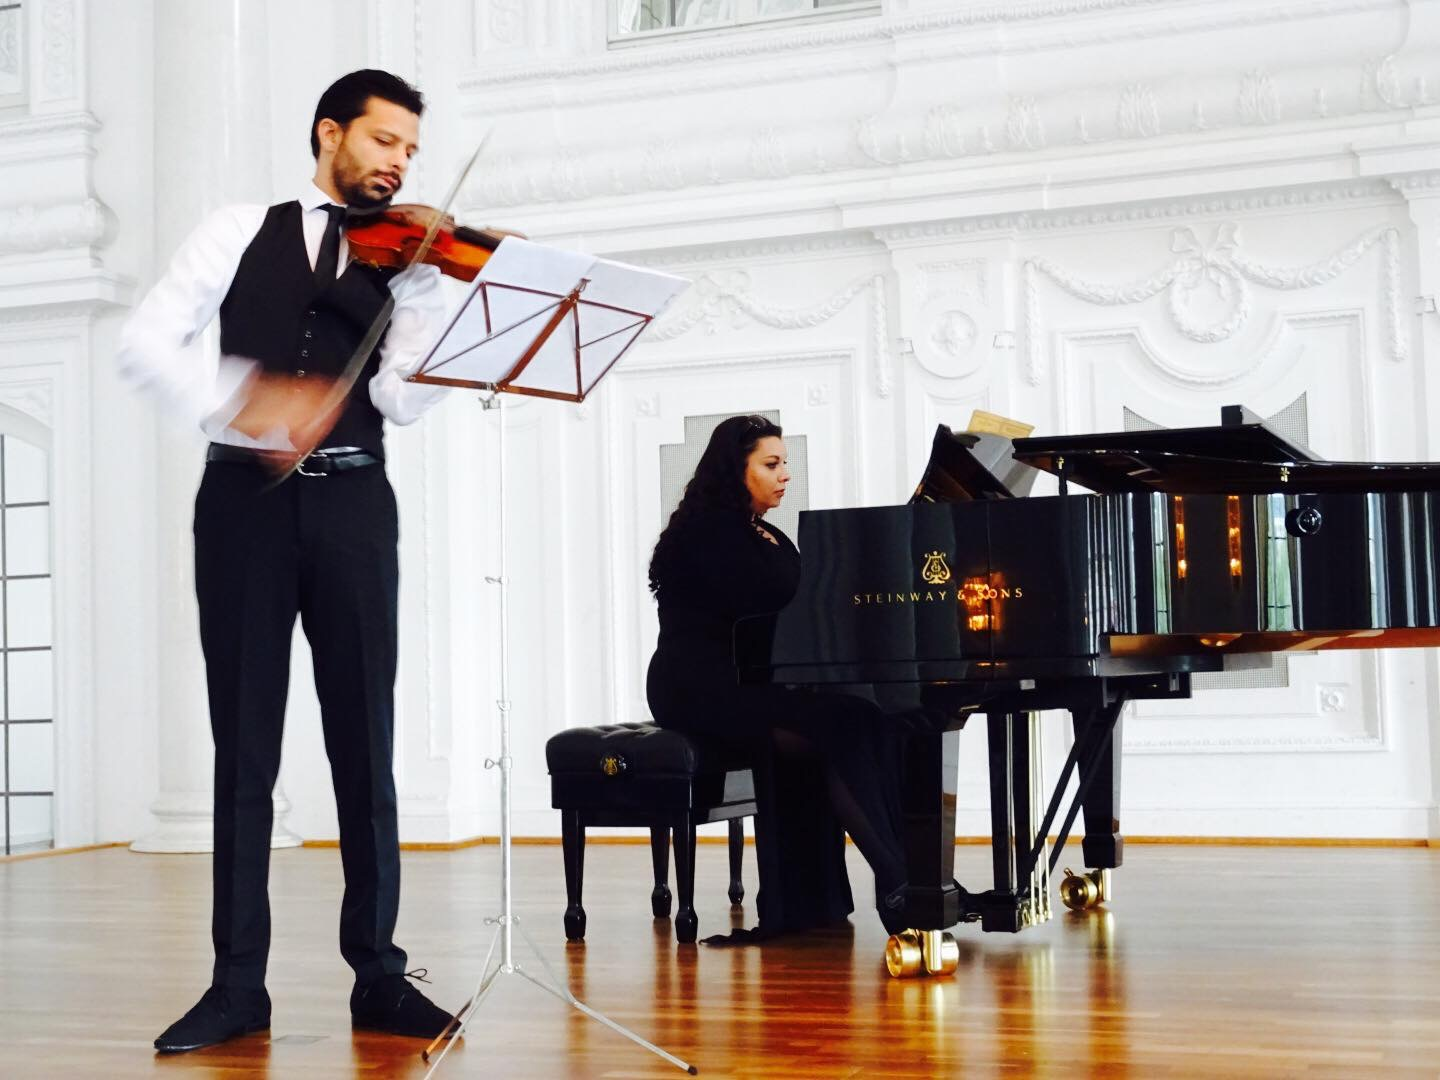 Mr Razvan Stoica accompanied by his sister concert pianist Andreea Stoica.